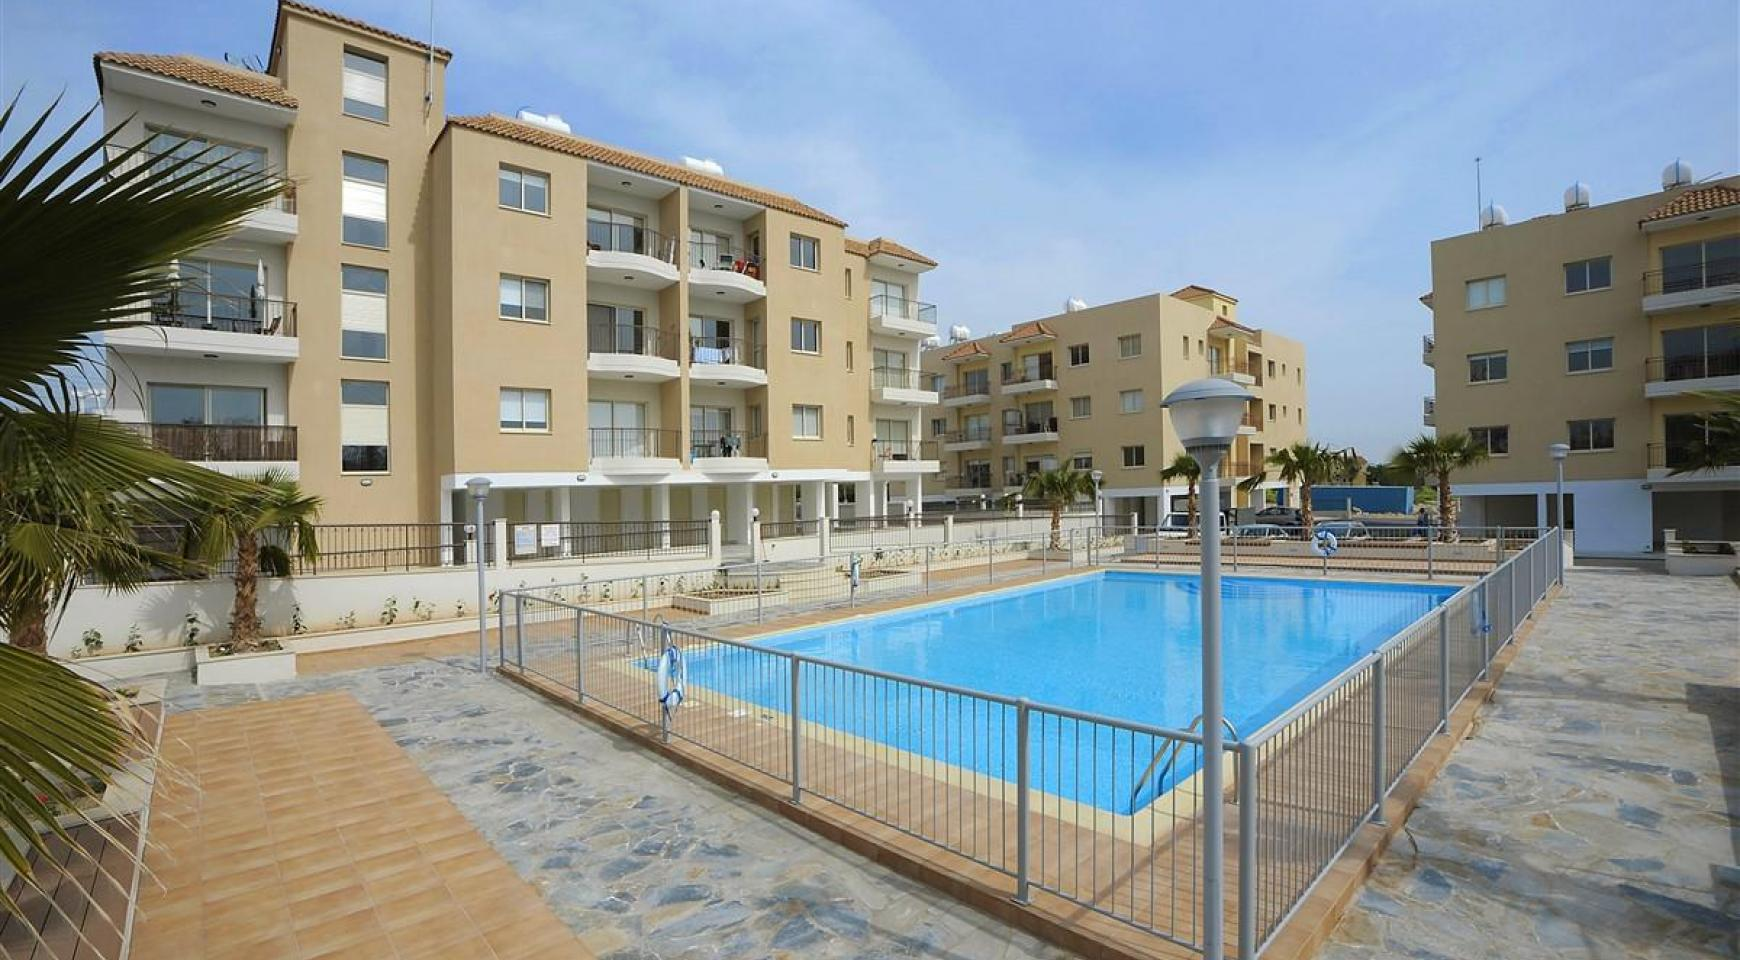 2 Bedroom Apartment in a Complex with the Swimming Pool - 2